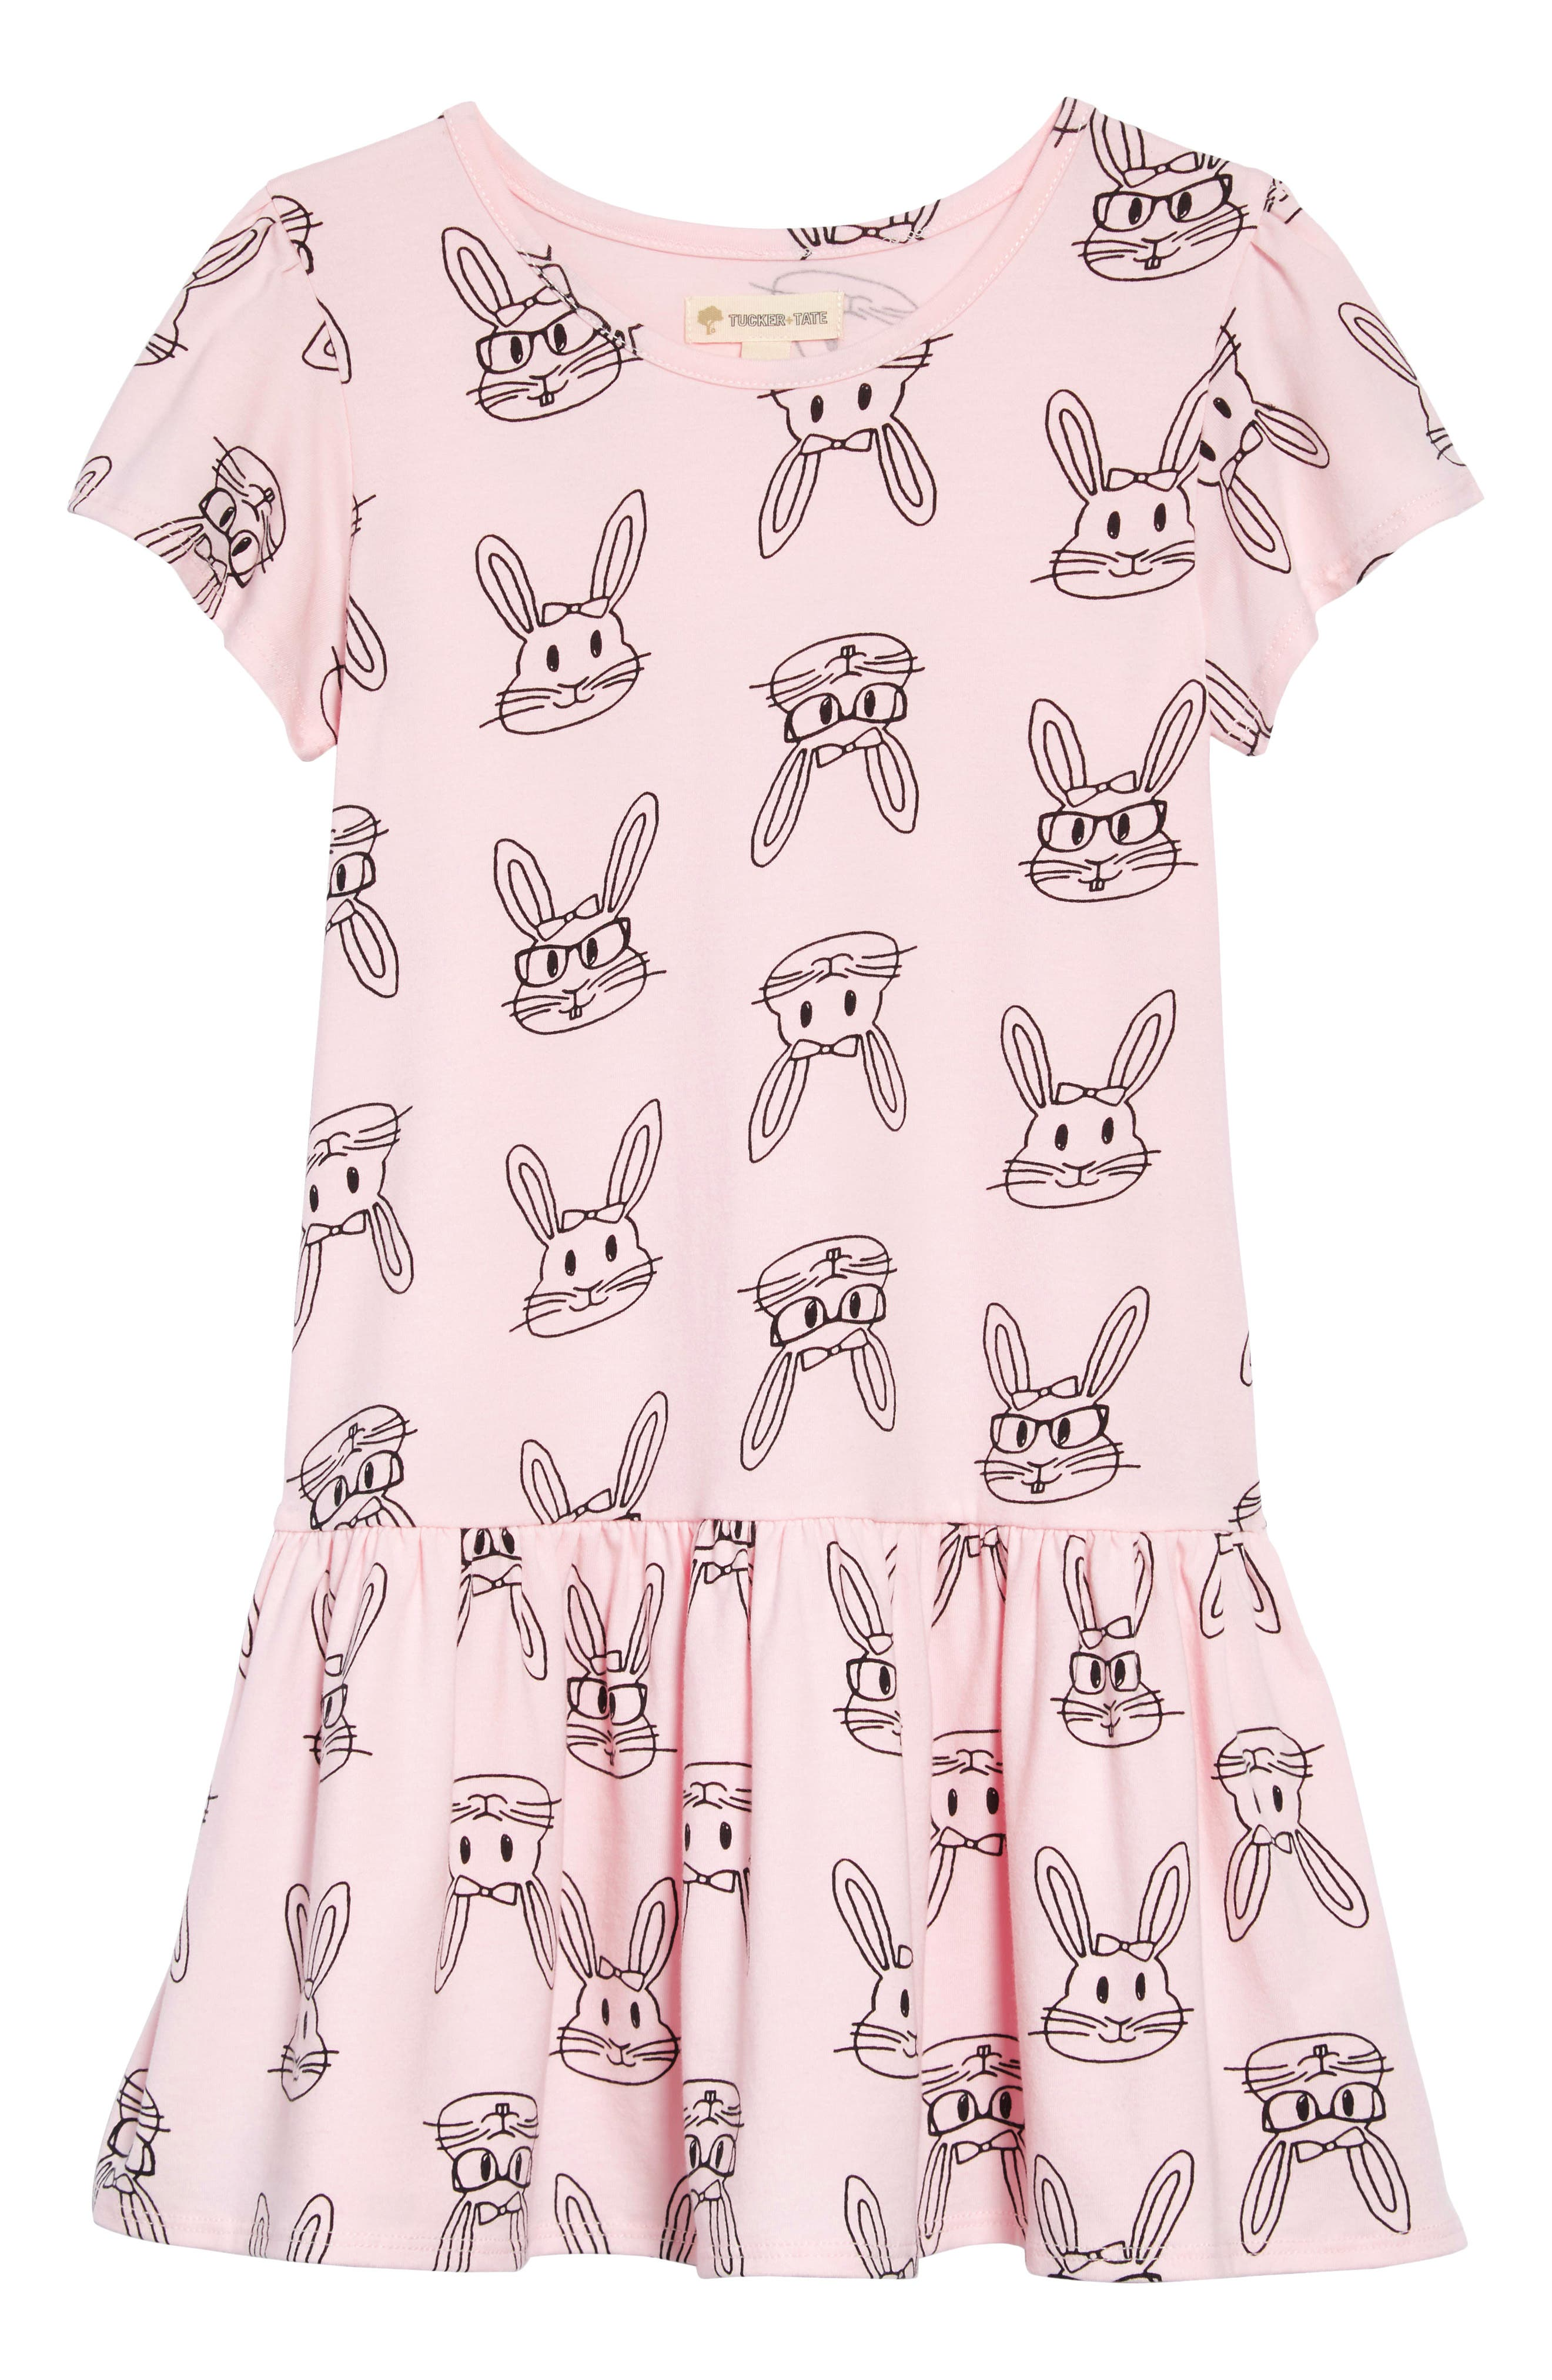 TUCKER + TATE, Tucker & Tate Print Jersey Dress, Main thumbnail 1, color, PINK AMOUR BUNNY DOODLE